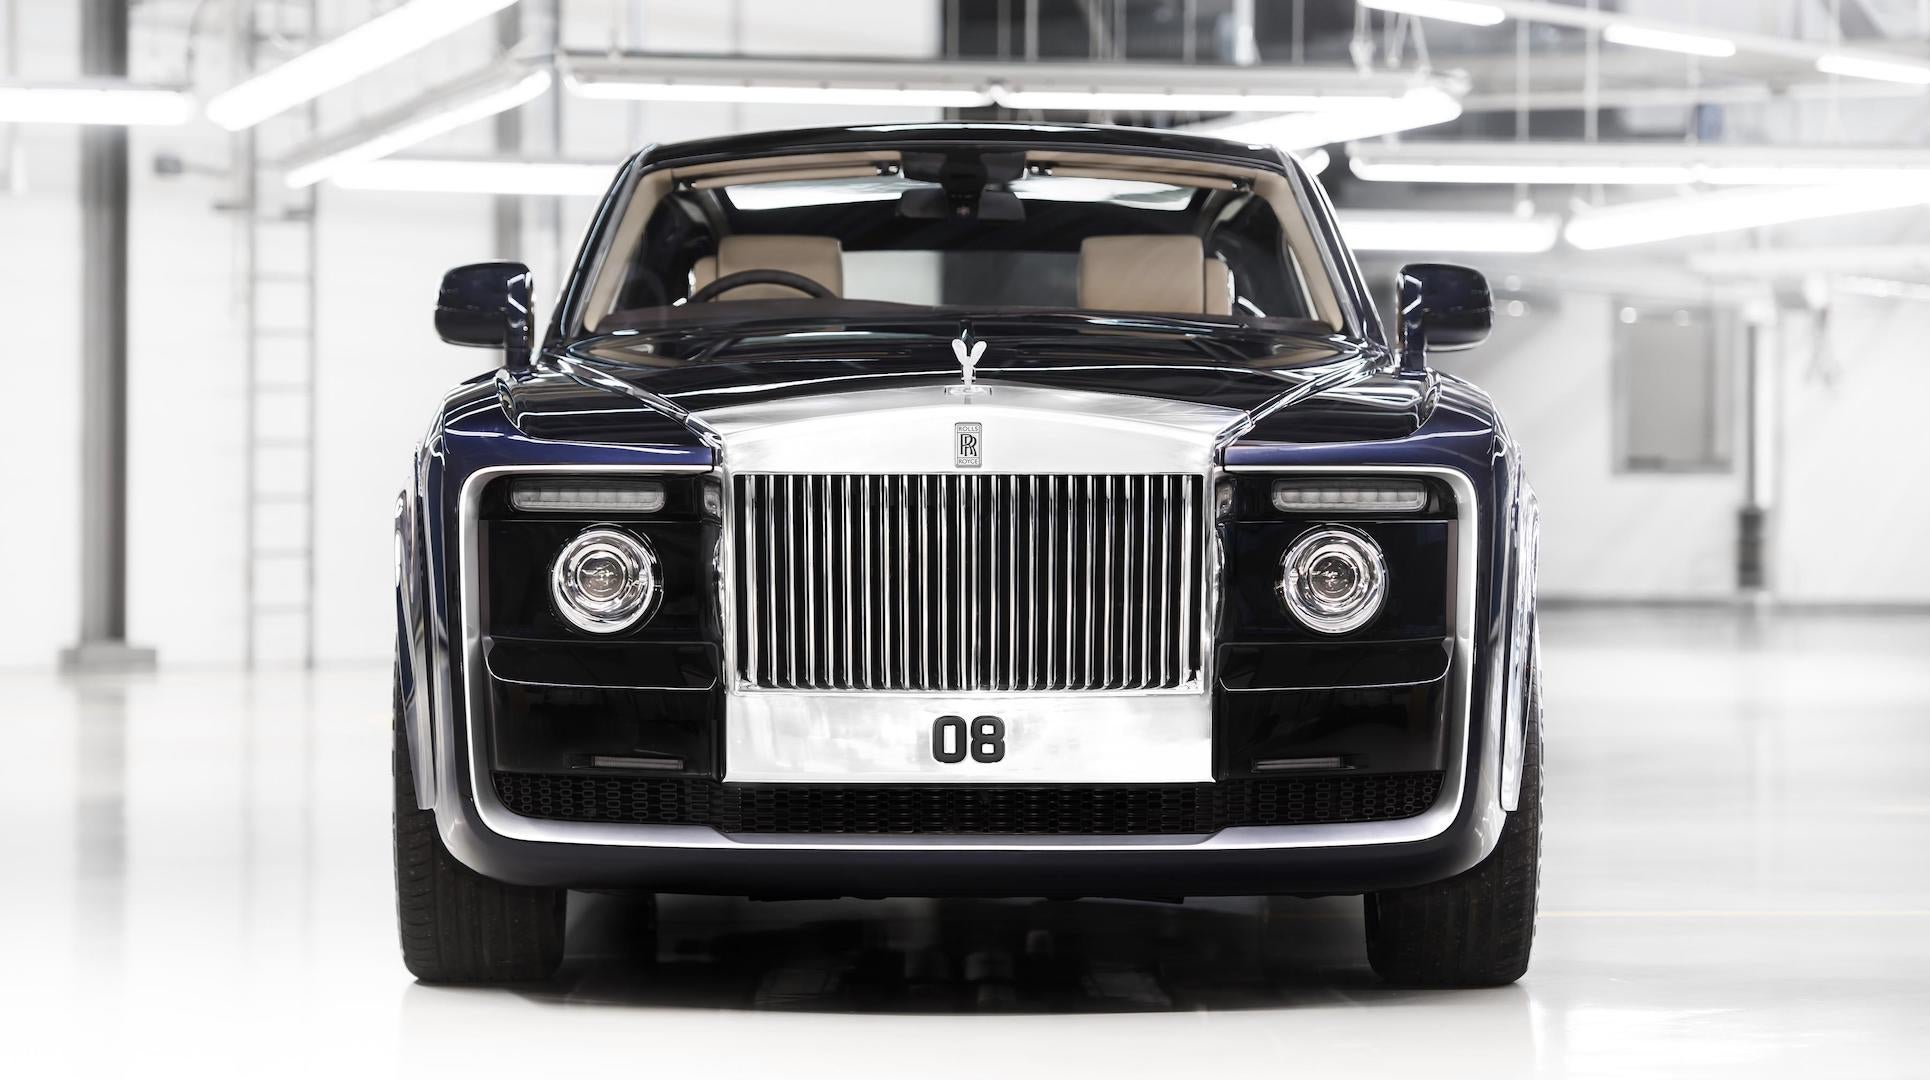 This Oddball Rolls-Royce Could Be The Most Expensive New Car Ever